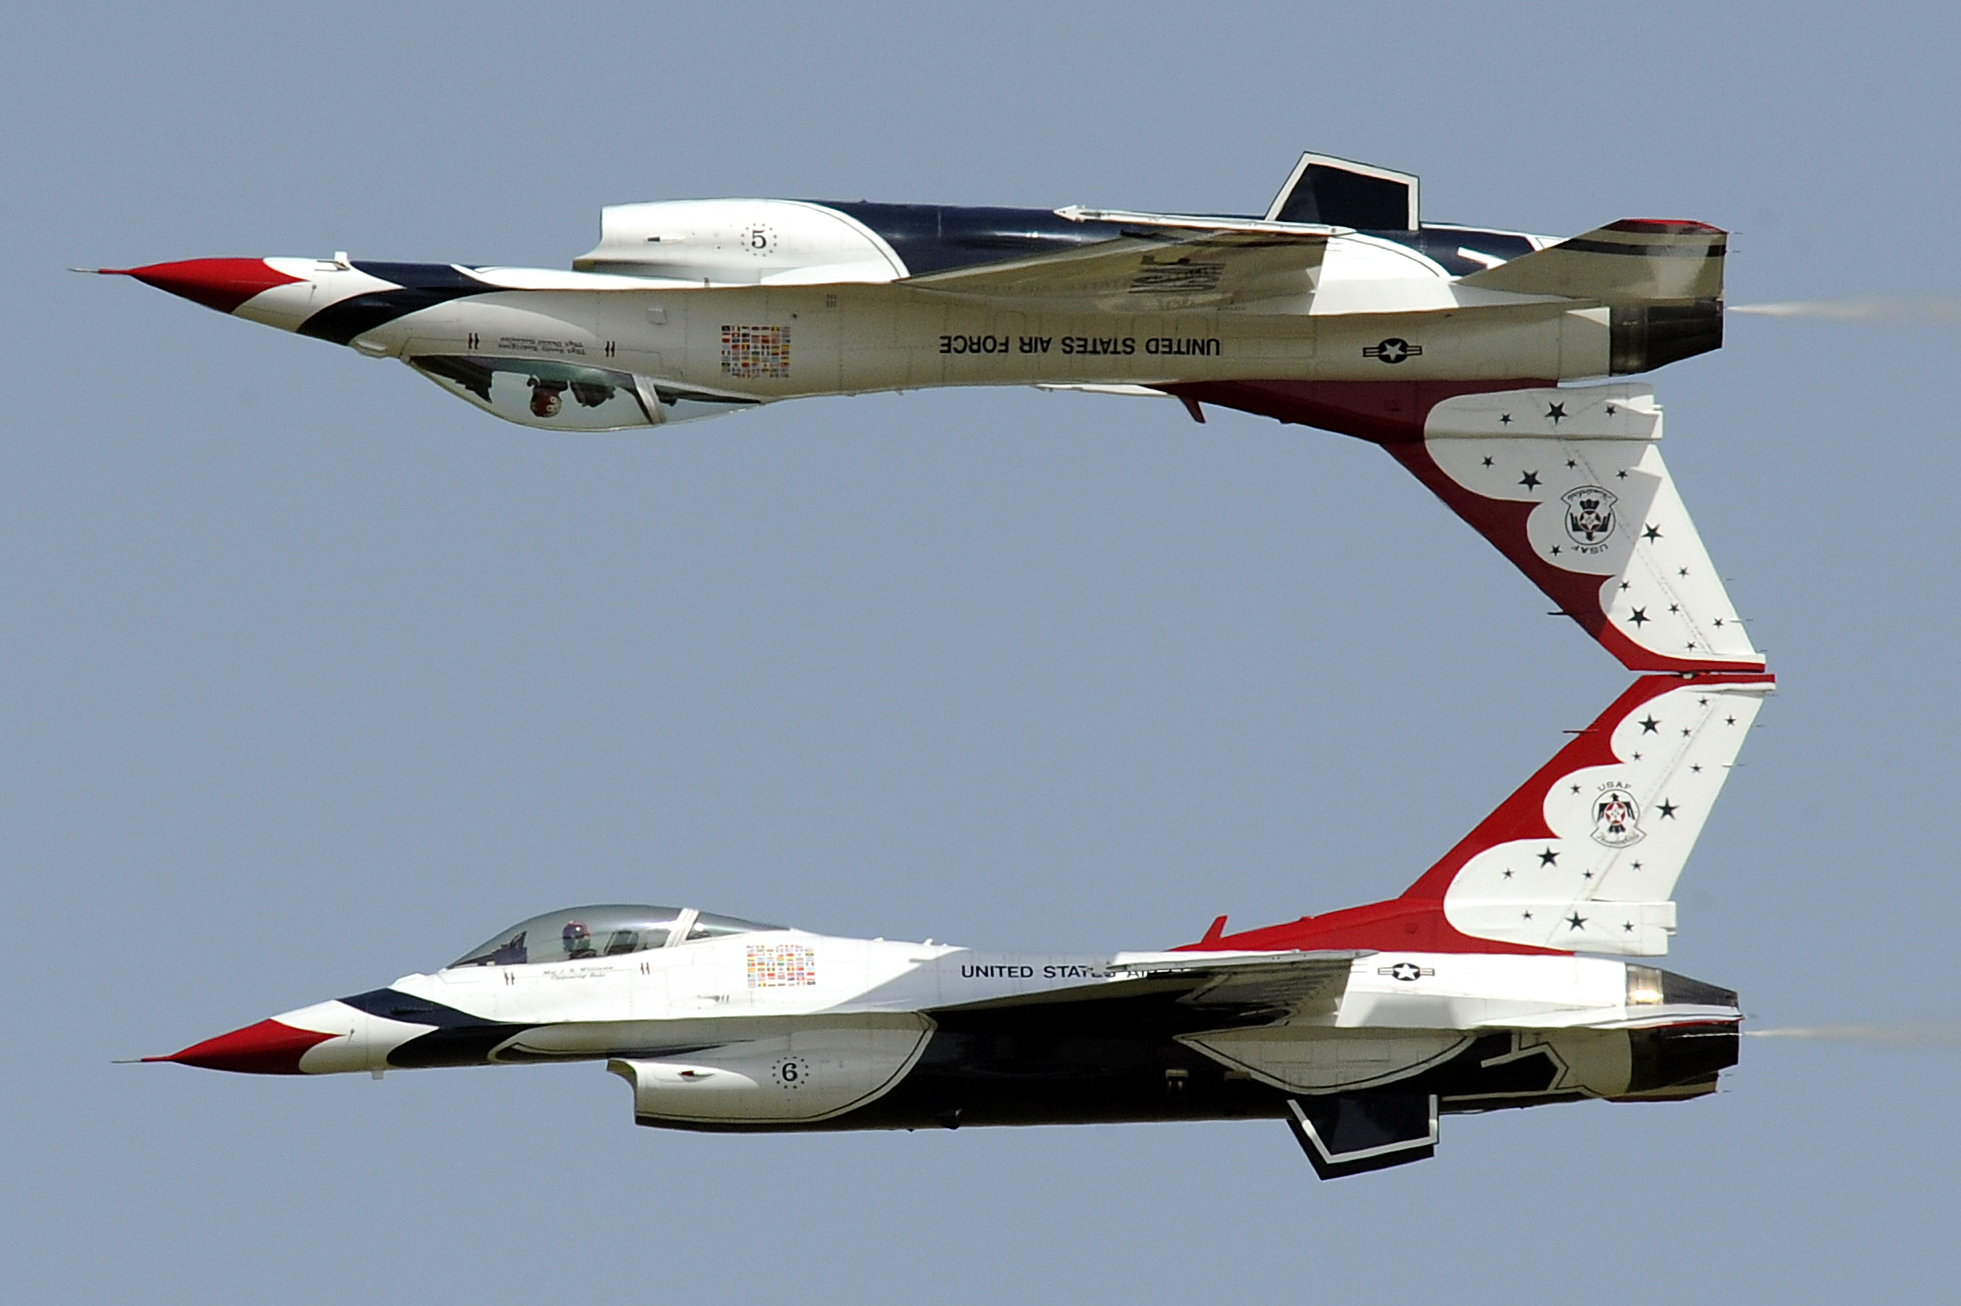 Milwaukee Air & Water Show Returns July 21-22, Featuring the U.S. Air Force Thunderbirds